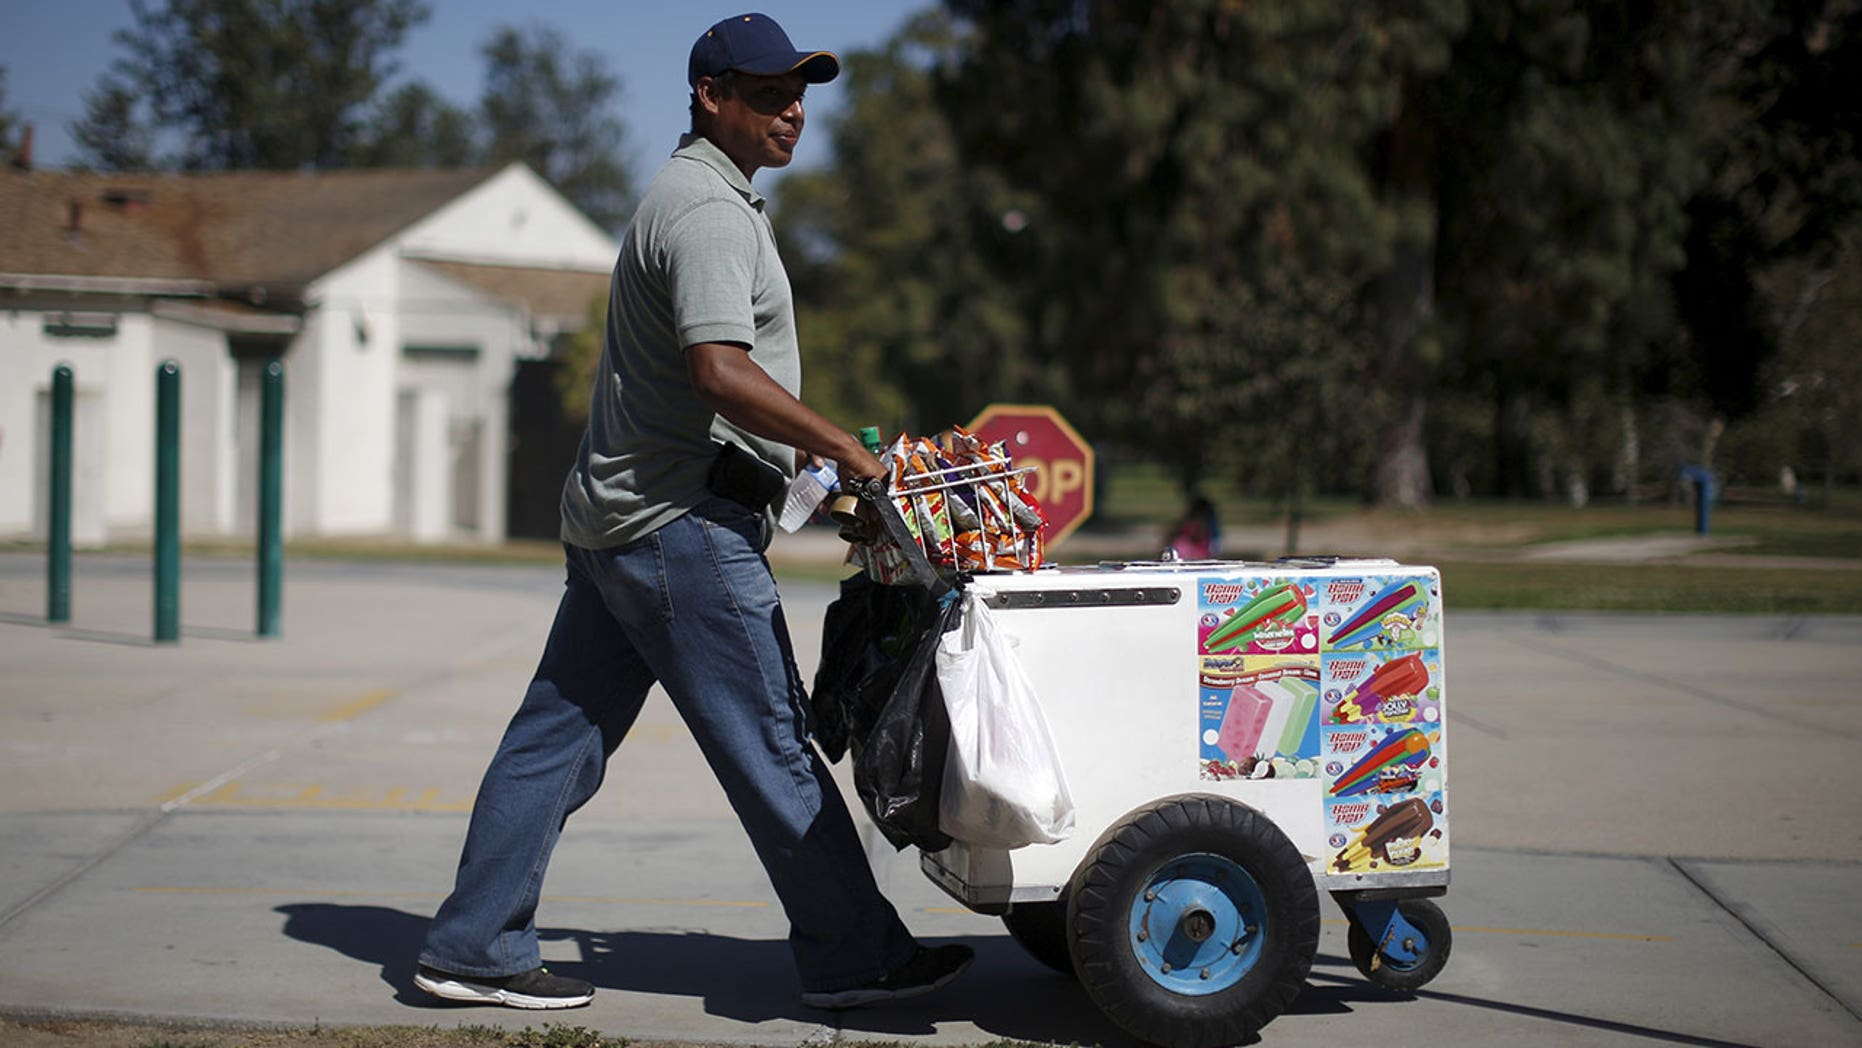 Street vendors in Los Angeles are not legally allowed to sell food on public streets and sidewalks.